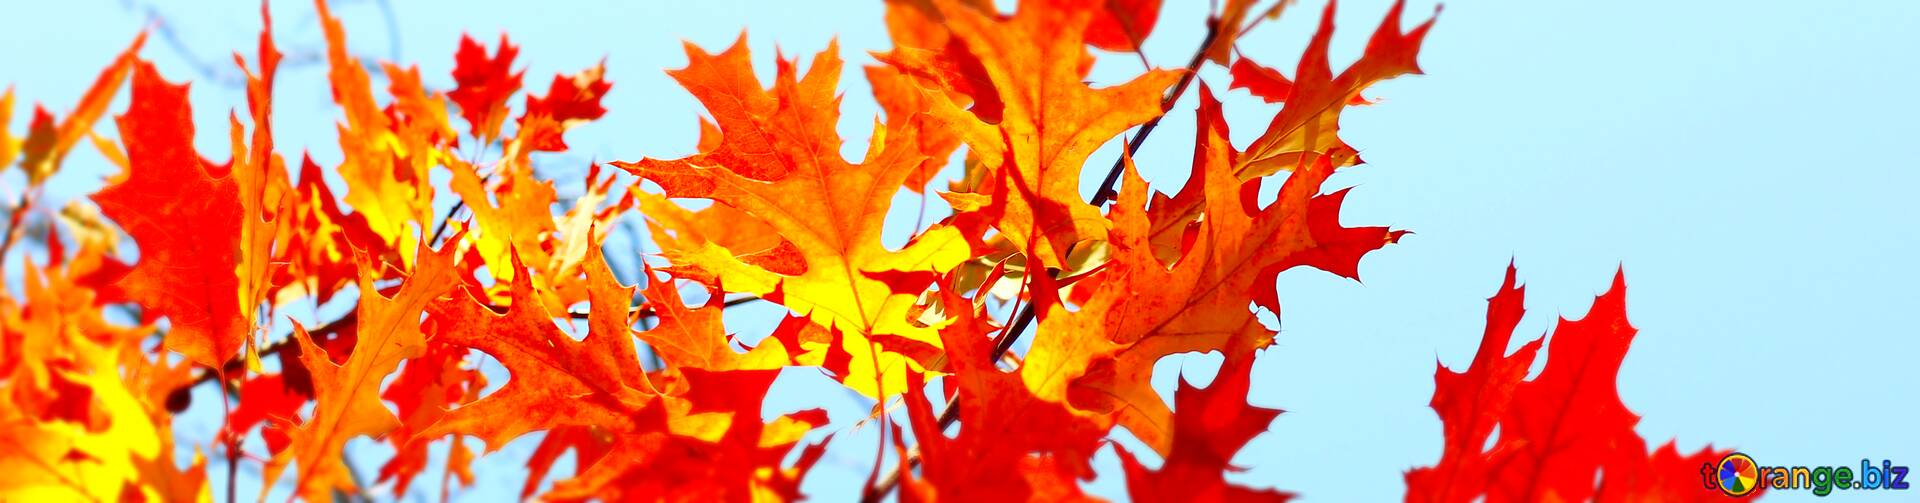 Download Free Picture Cover Autumn Desktop Wallpapers On Cc By